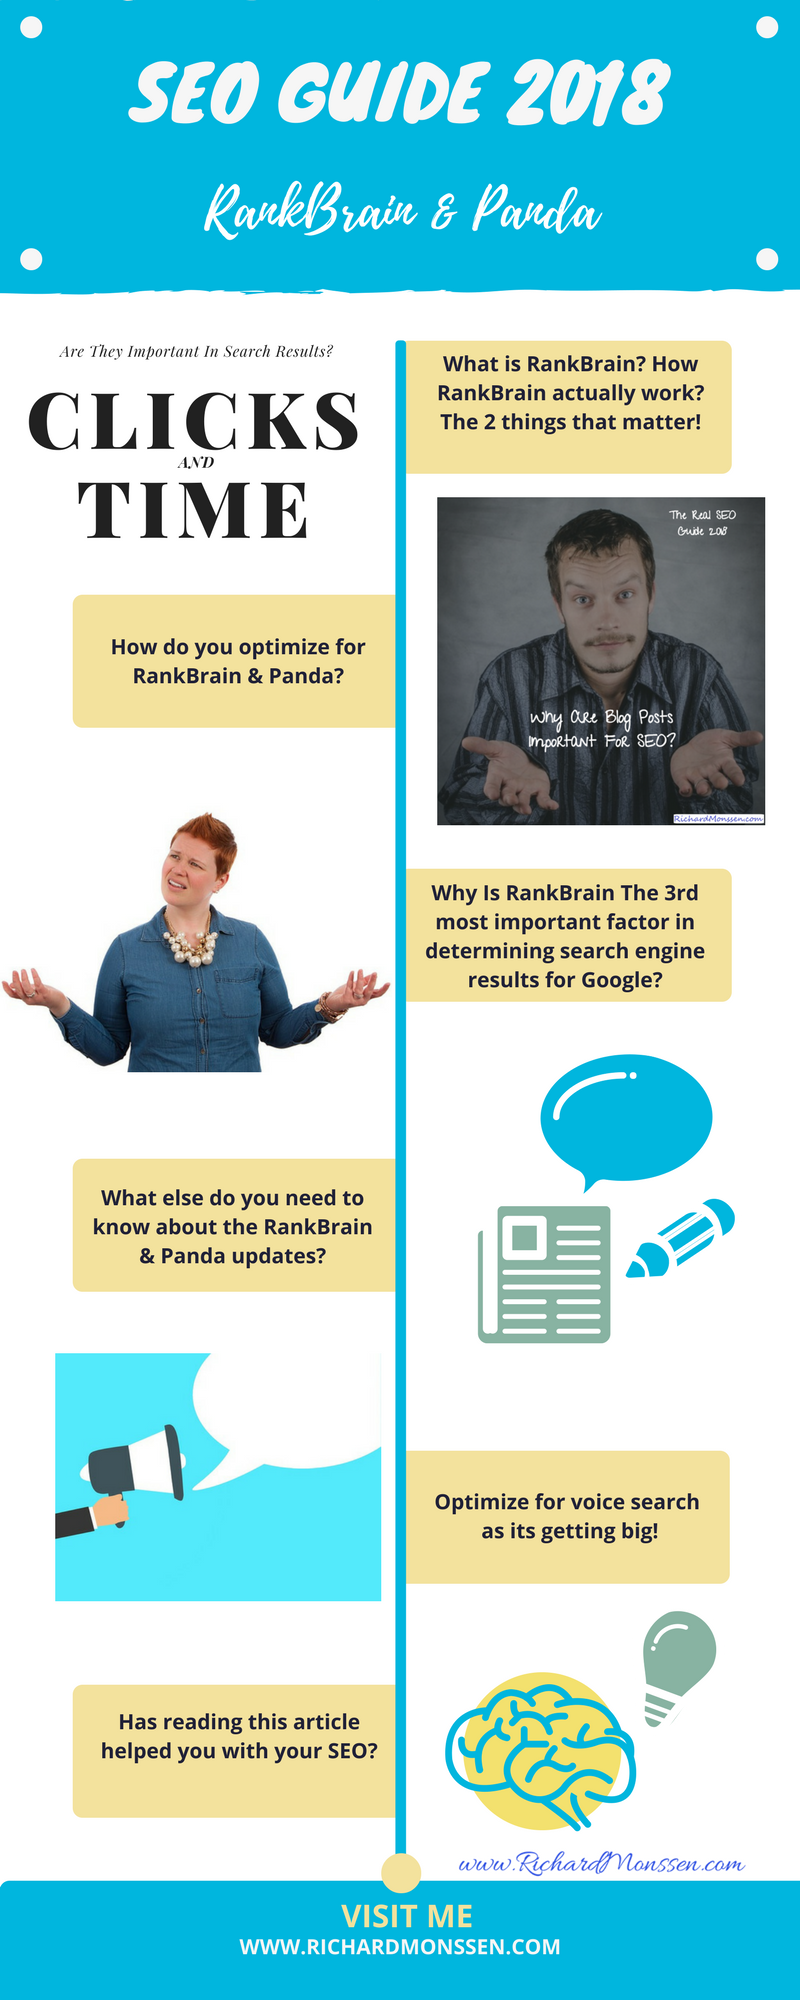 SEO Guide 2018 - RankBrain And Panda Infographic